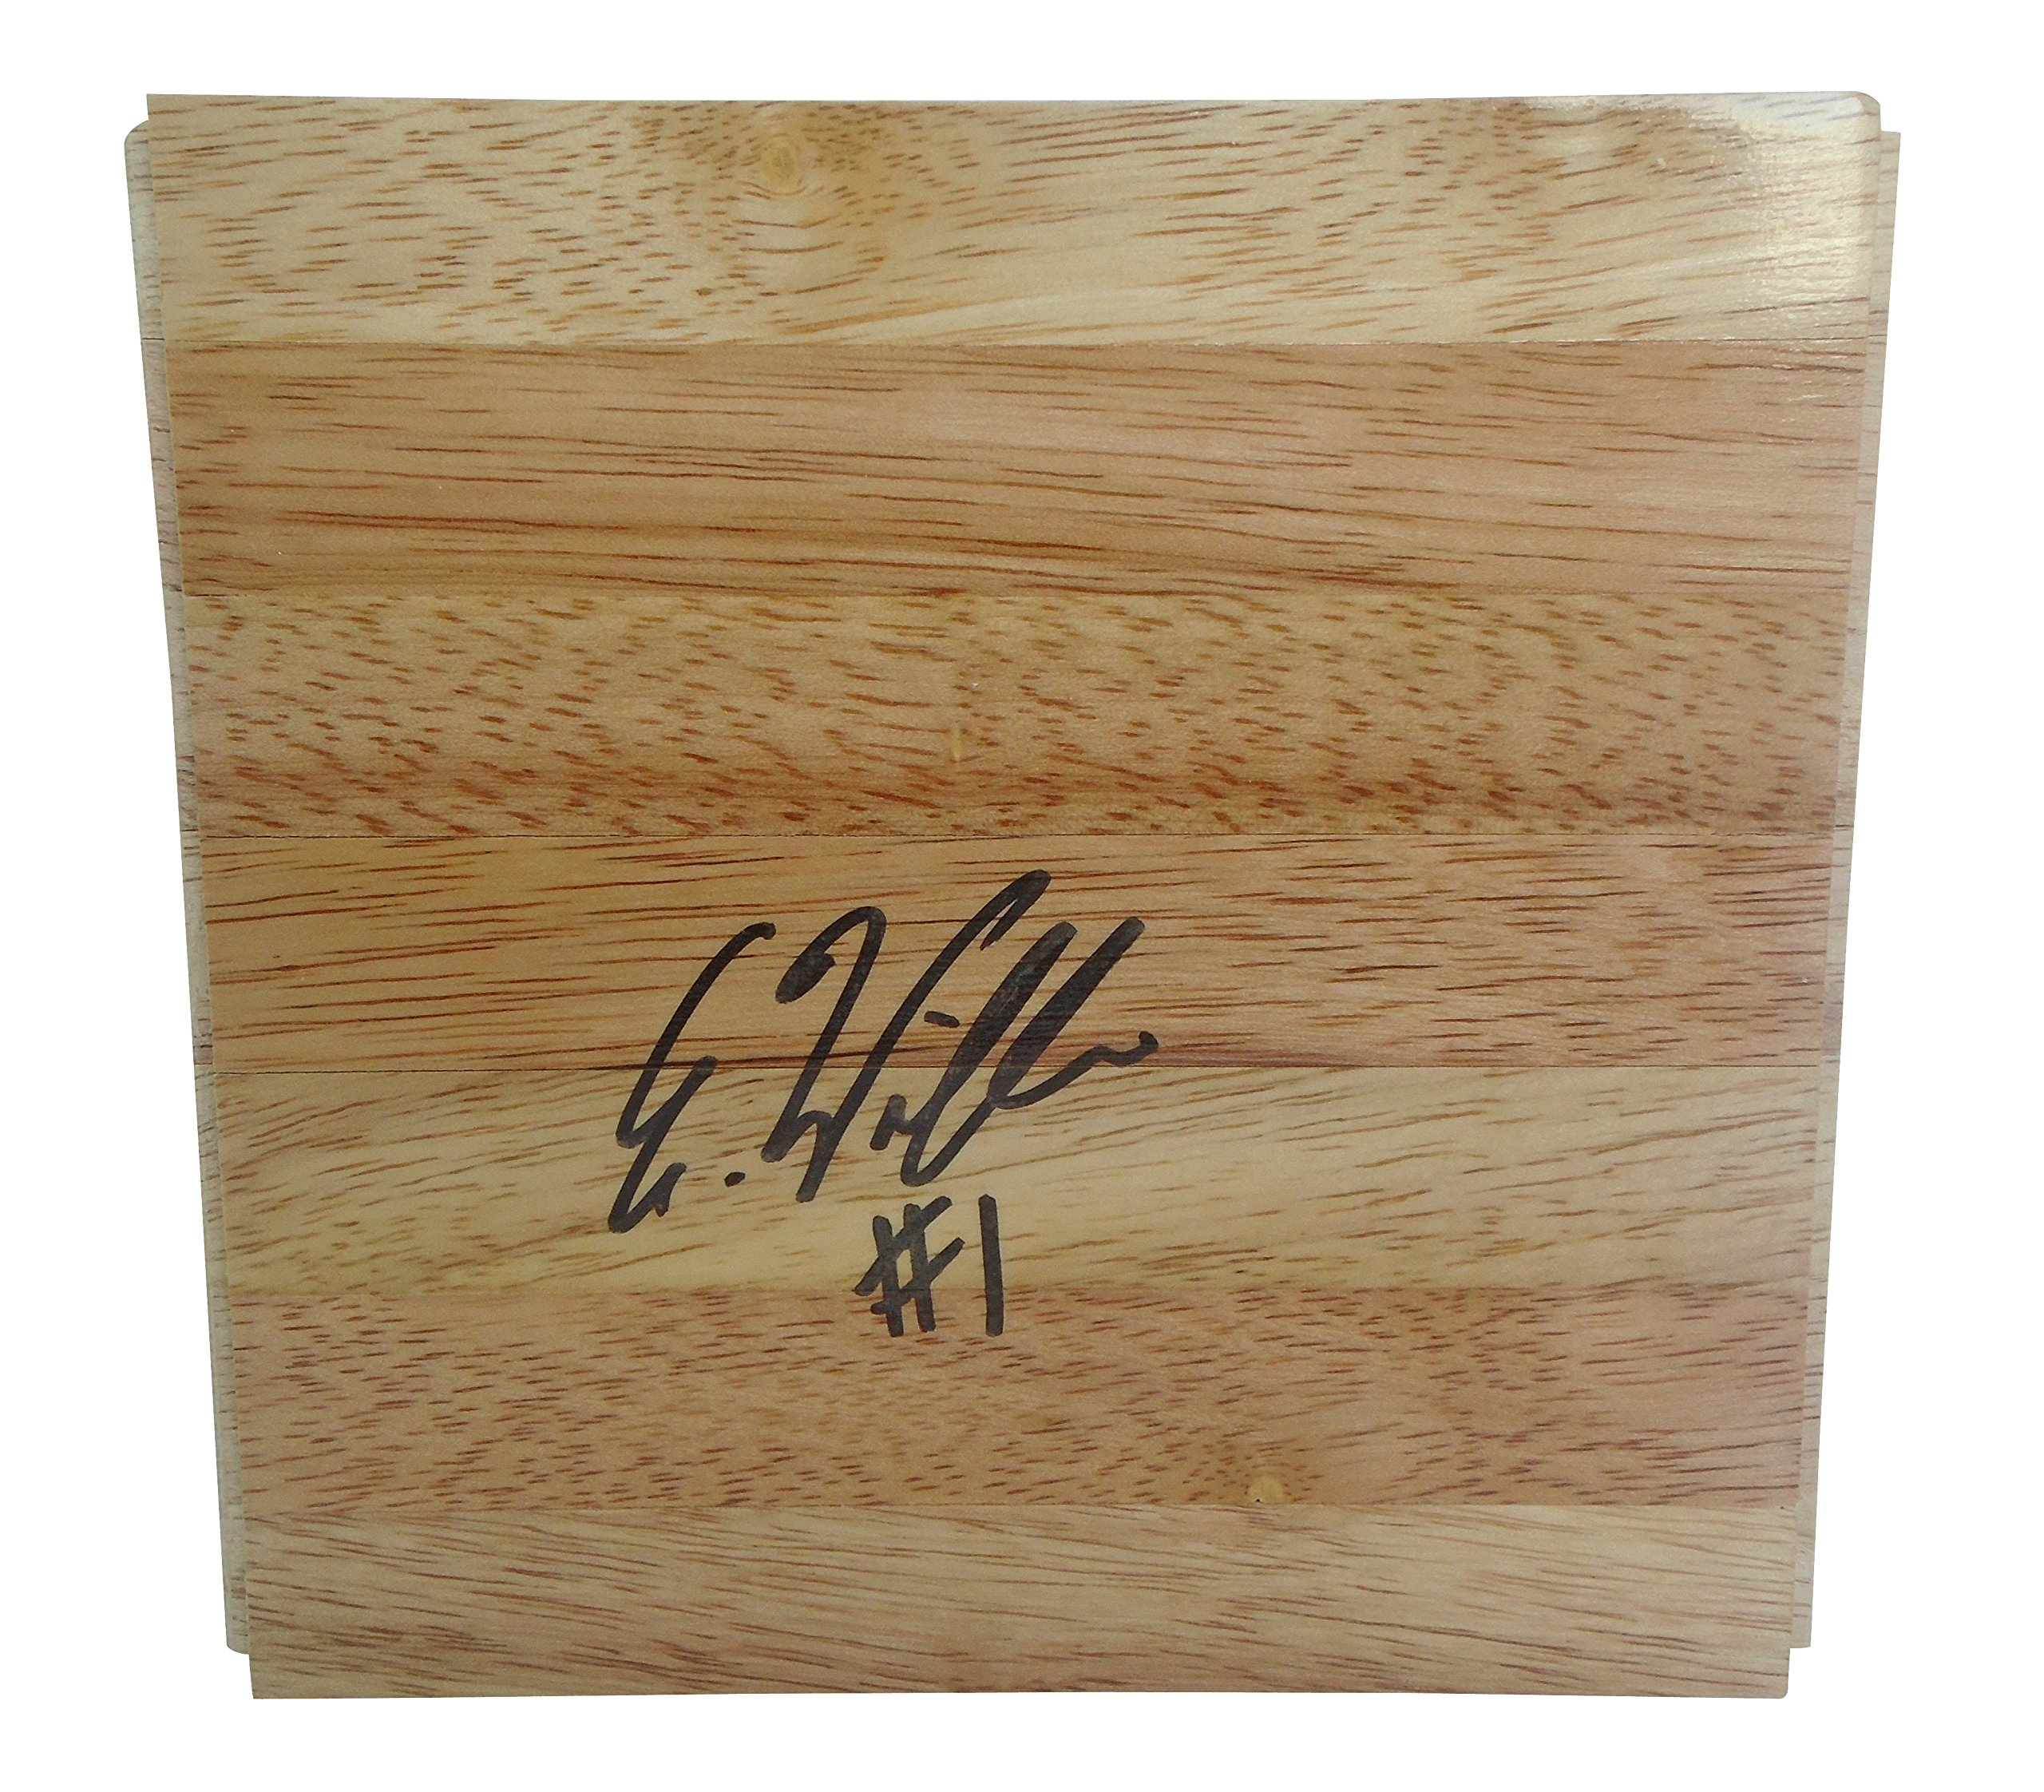 Atlanta Dream Elizabeth Williams Autographed Hand Signed 6x6 Parquet Floorboard with Proof Photo of Signing, Team USA, Connecticut Sun, Duke Blue Devils, COA Basketball Floor Boards